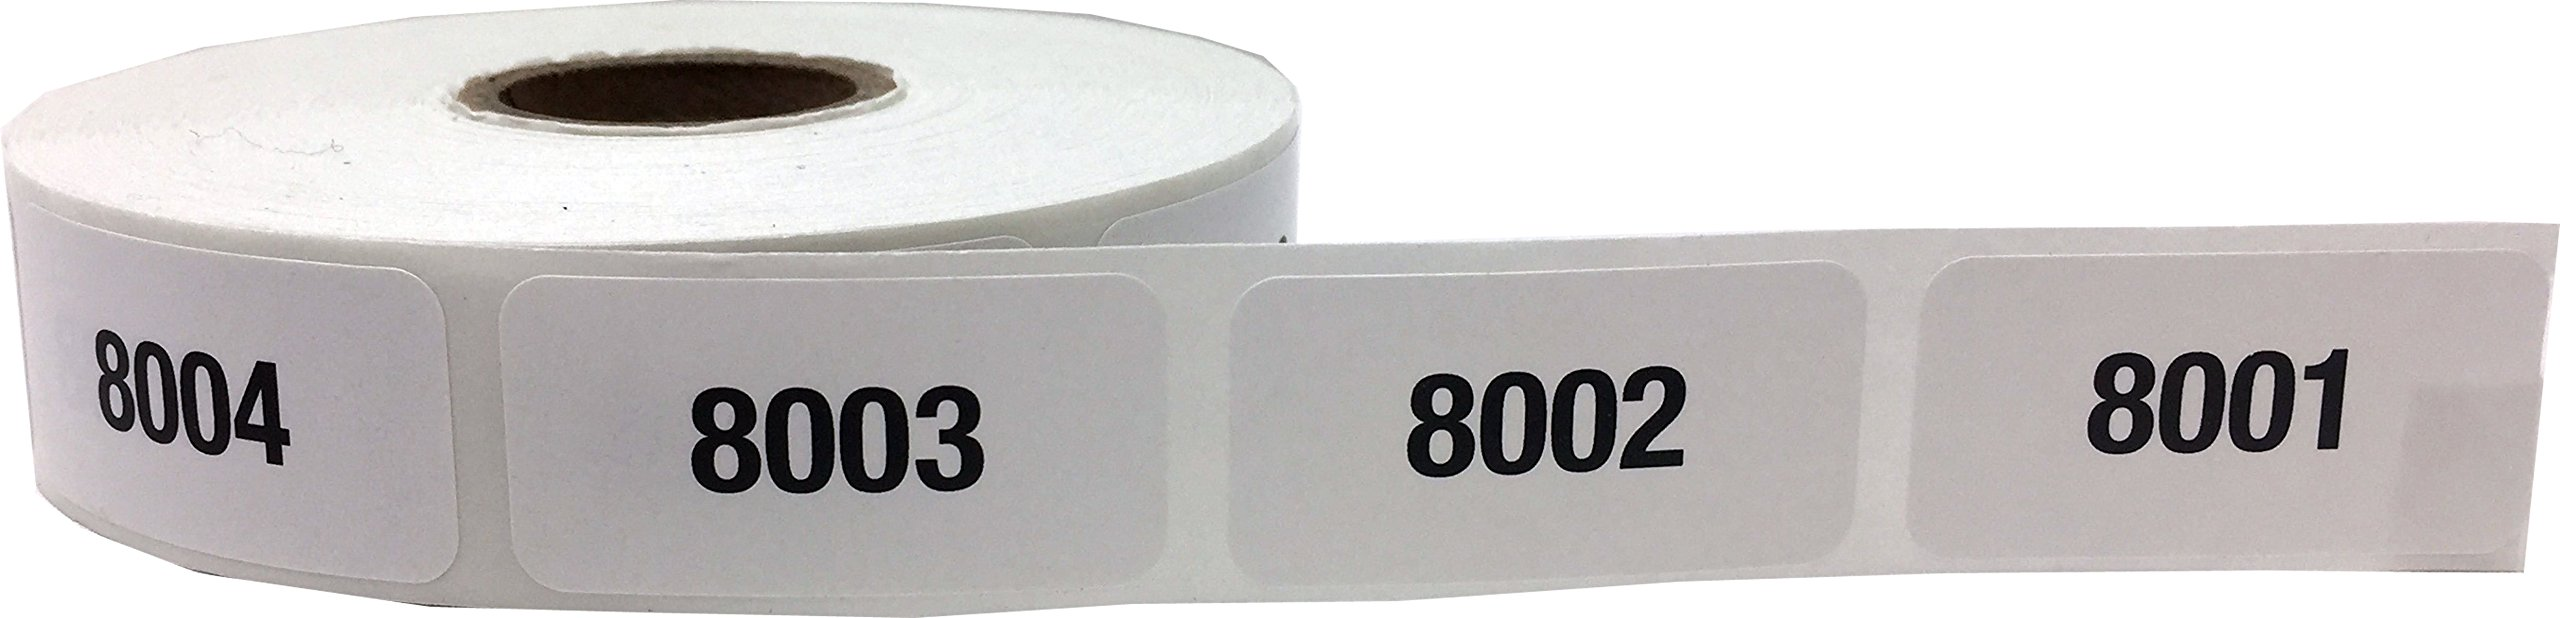 Consecutive Number Labels Bulk Pack Numbers 1 Through 10,000 White/Black .75 x 1.5 Rectangle Small Number Stickers For Inventory by InStockLabels.com (Image #2)